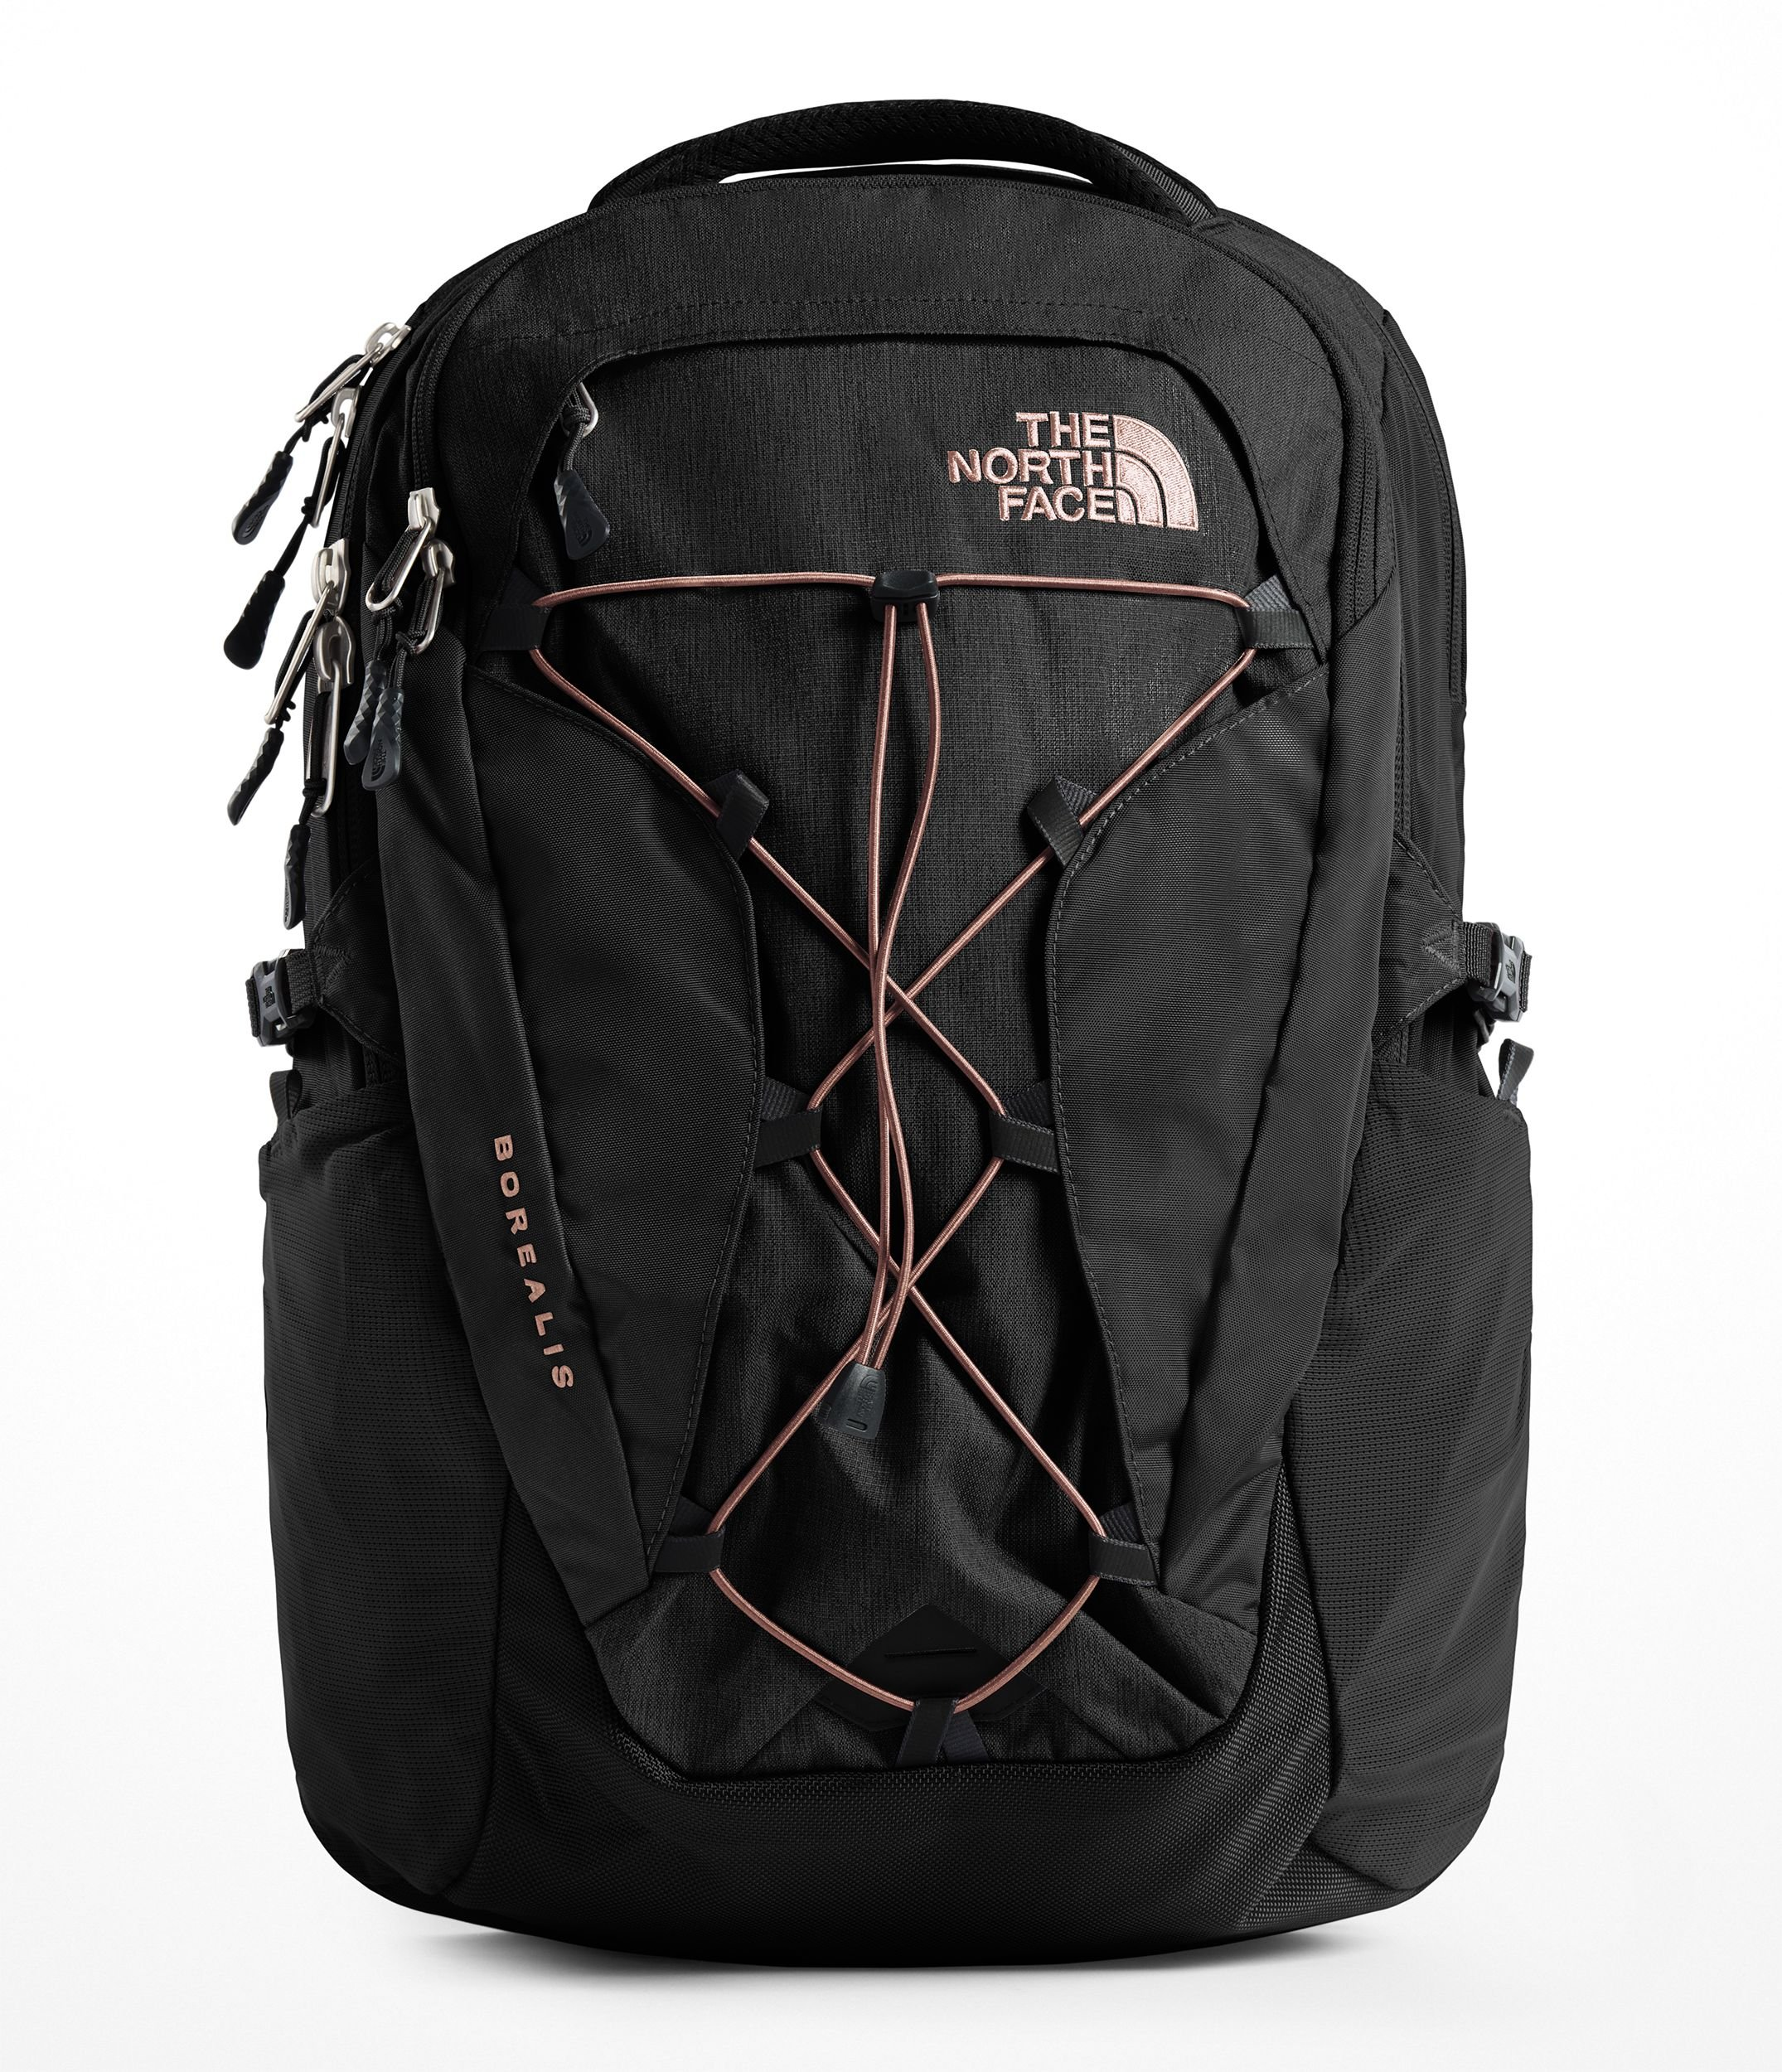 The North Face Women's Borealis Backpack - TNF Black & Misty Rose - OS